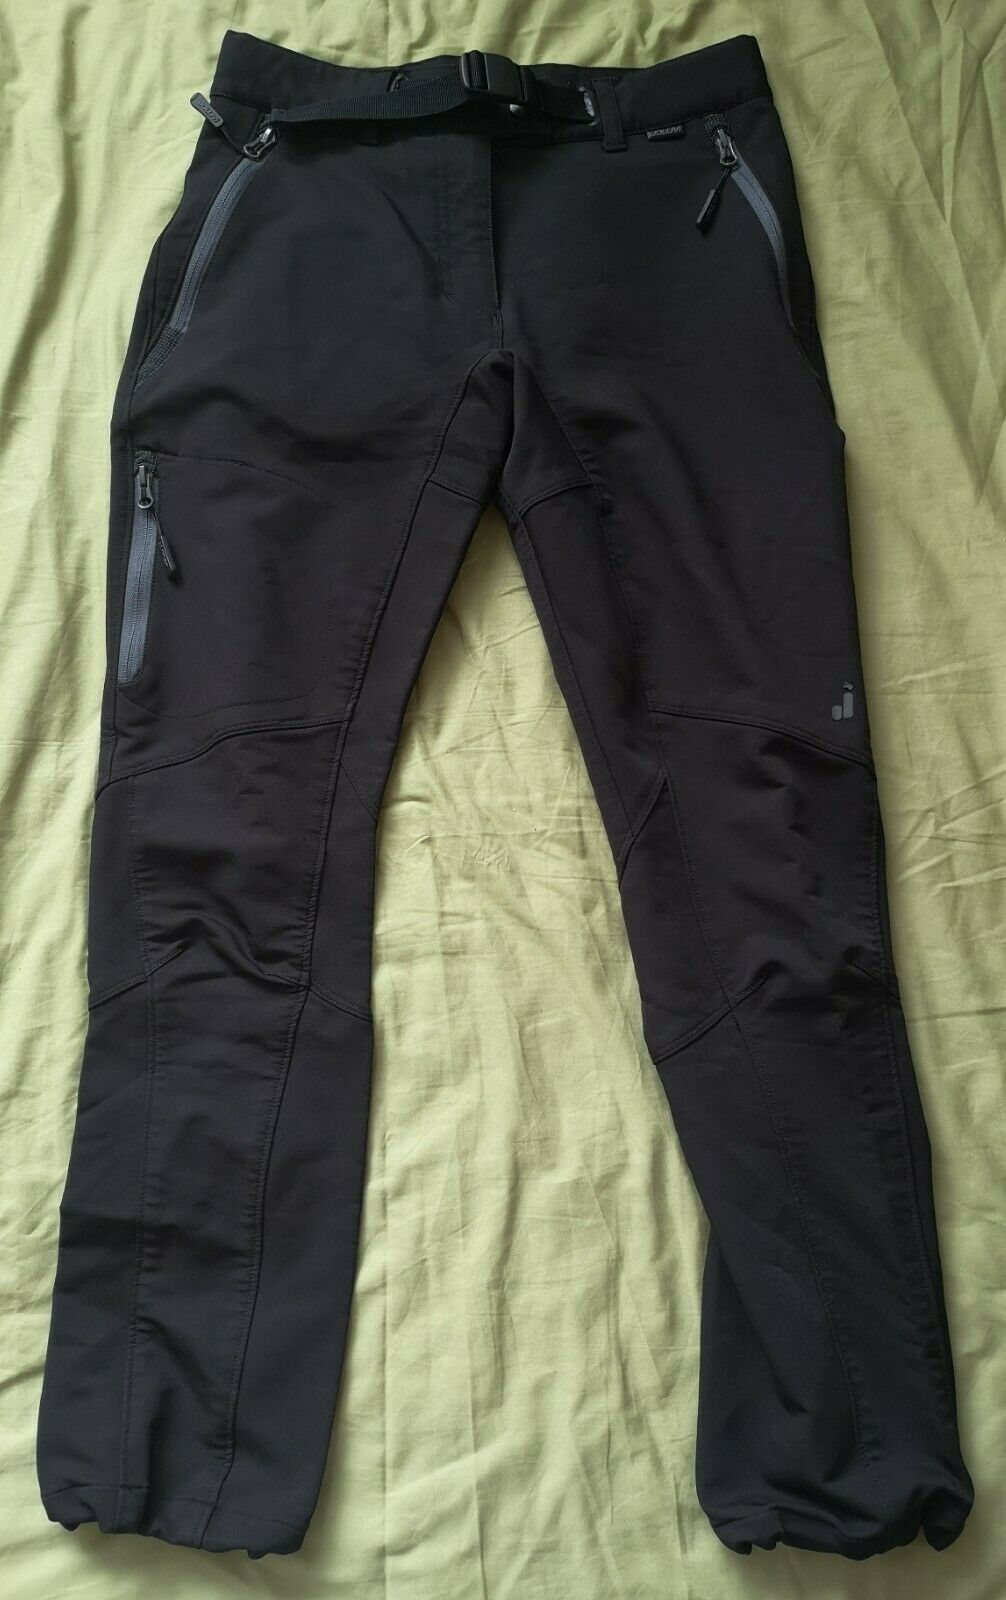 Joluvi Women's Black Outdoor Hiking Trousers Size XS Good Used Condition